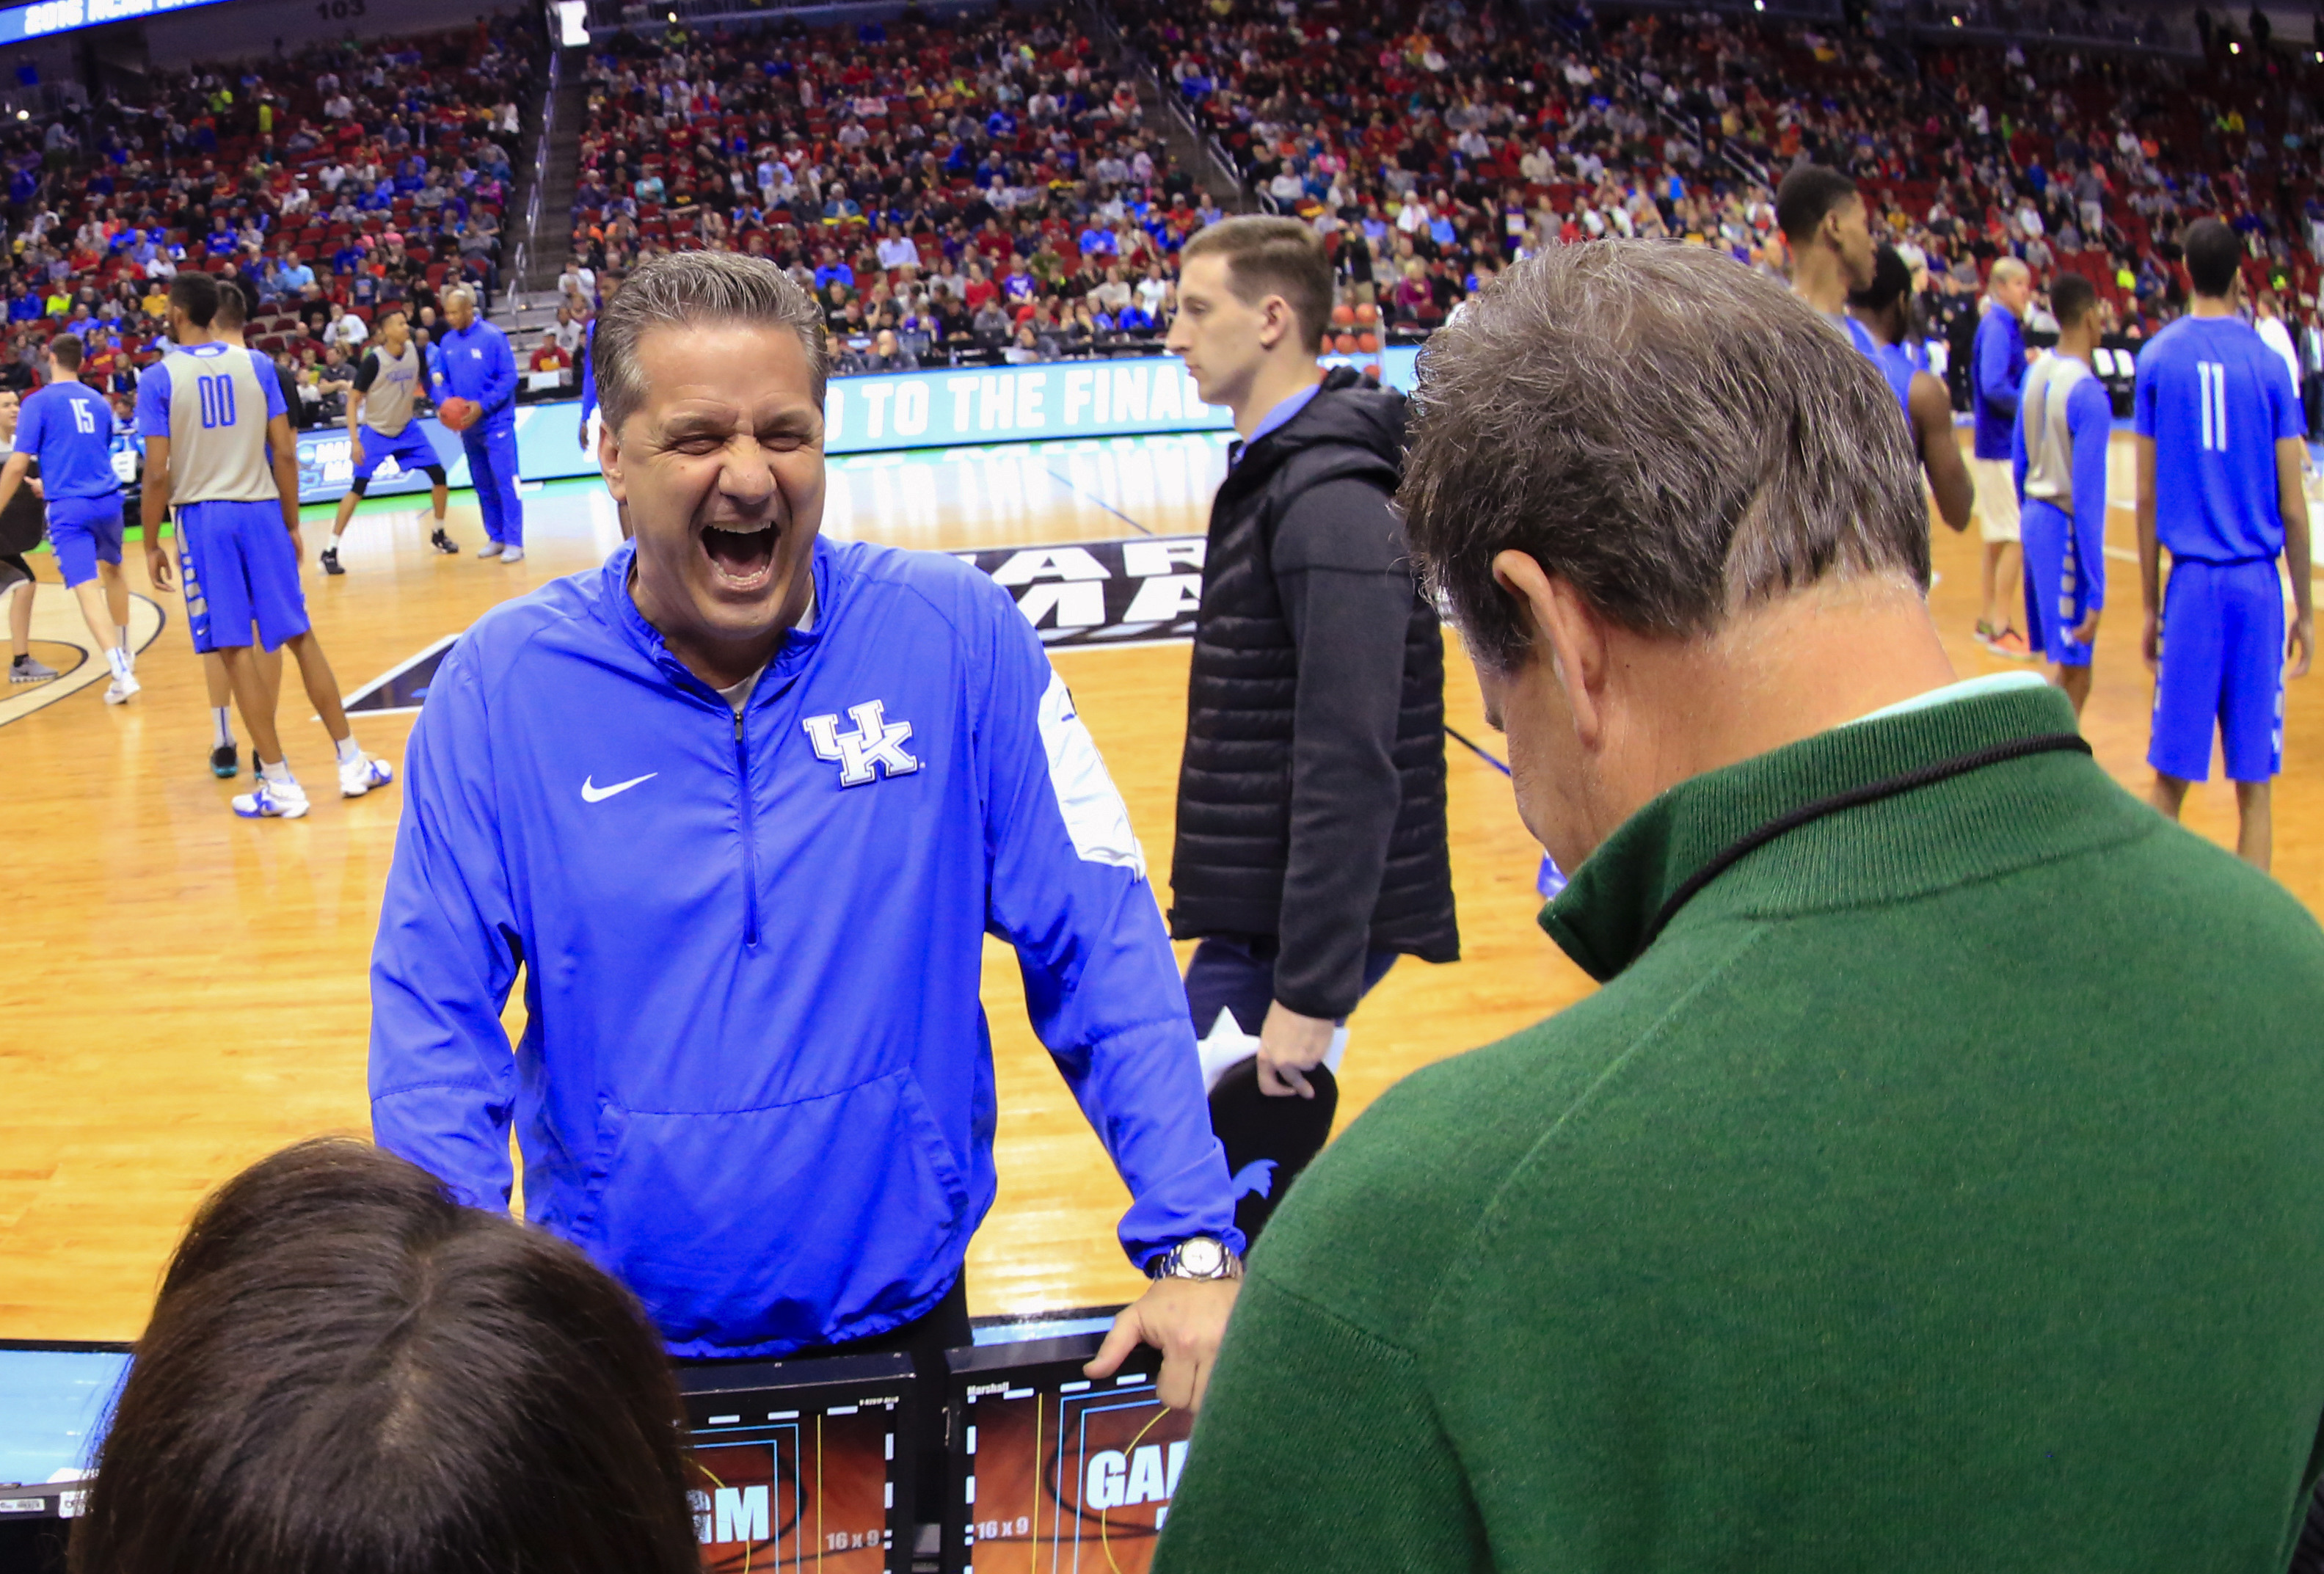 Kentucky coach John Calipari laughs with reporters during practice for a first-round men's college basketball game in the NCAA Tournament in Des Moines, Iowa, Wednesday, March 16, 2016. Kentucky will play Stony Brook on Thursday. (AP Photo/Nati Harnik)